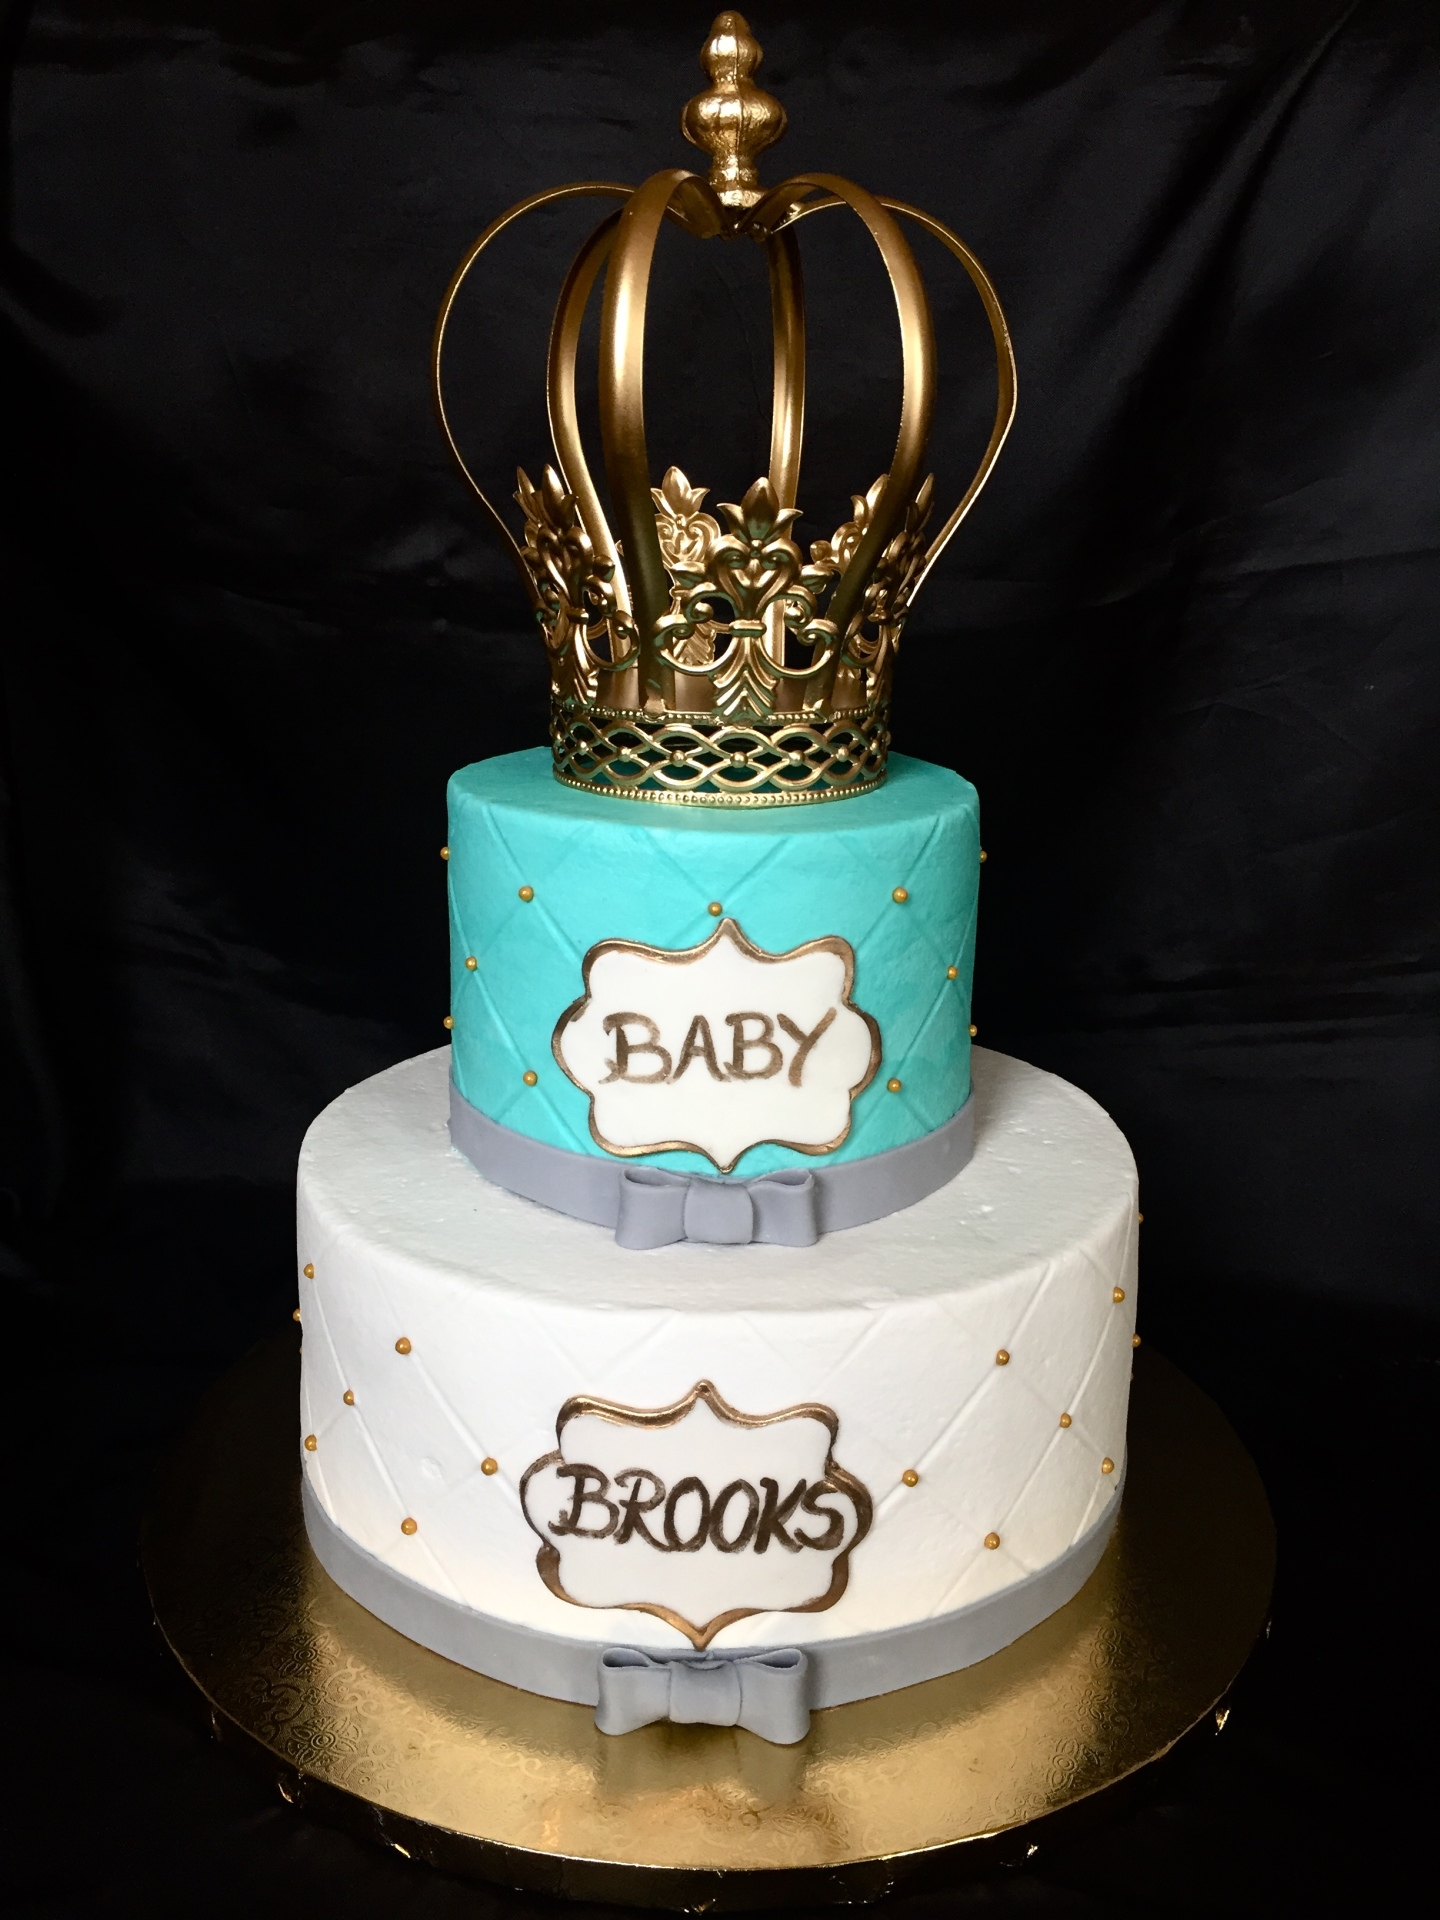 Royal theme teal and gold buttercream with crown